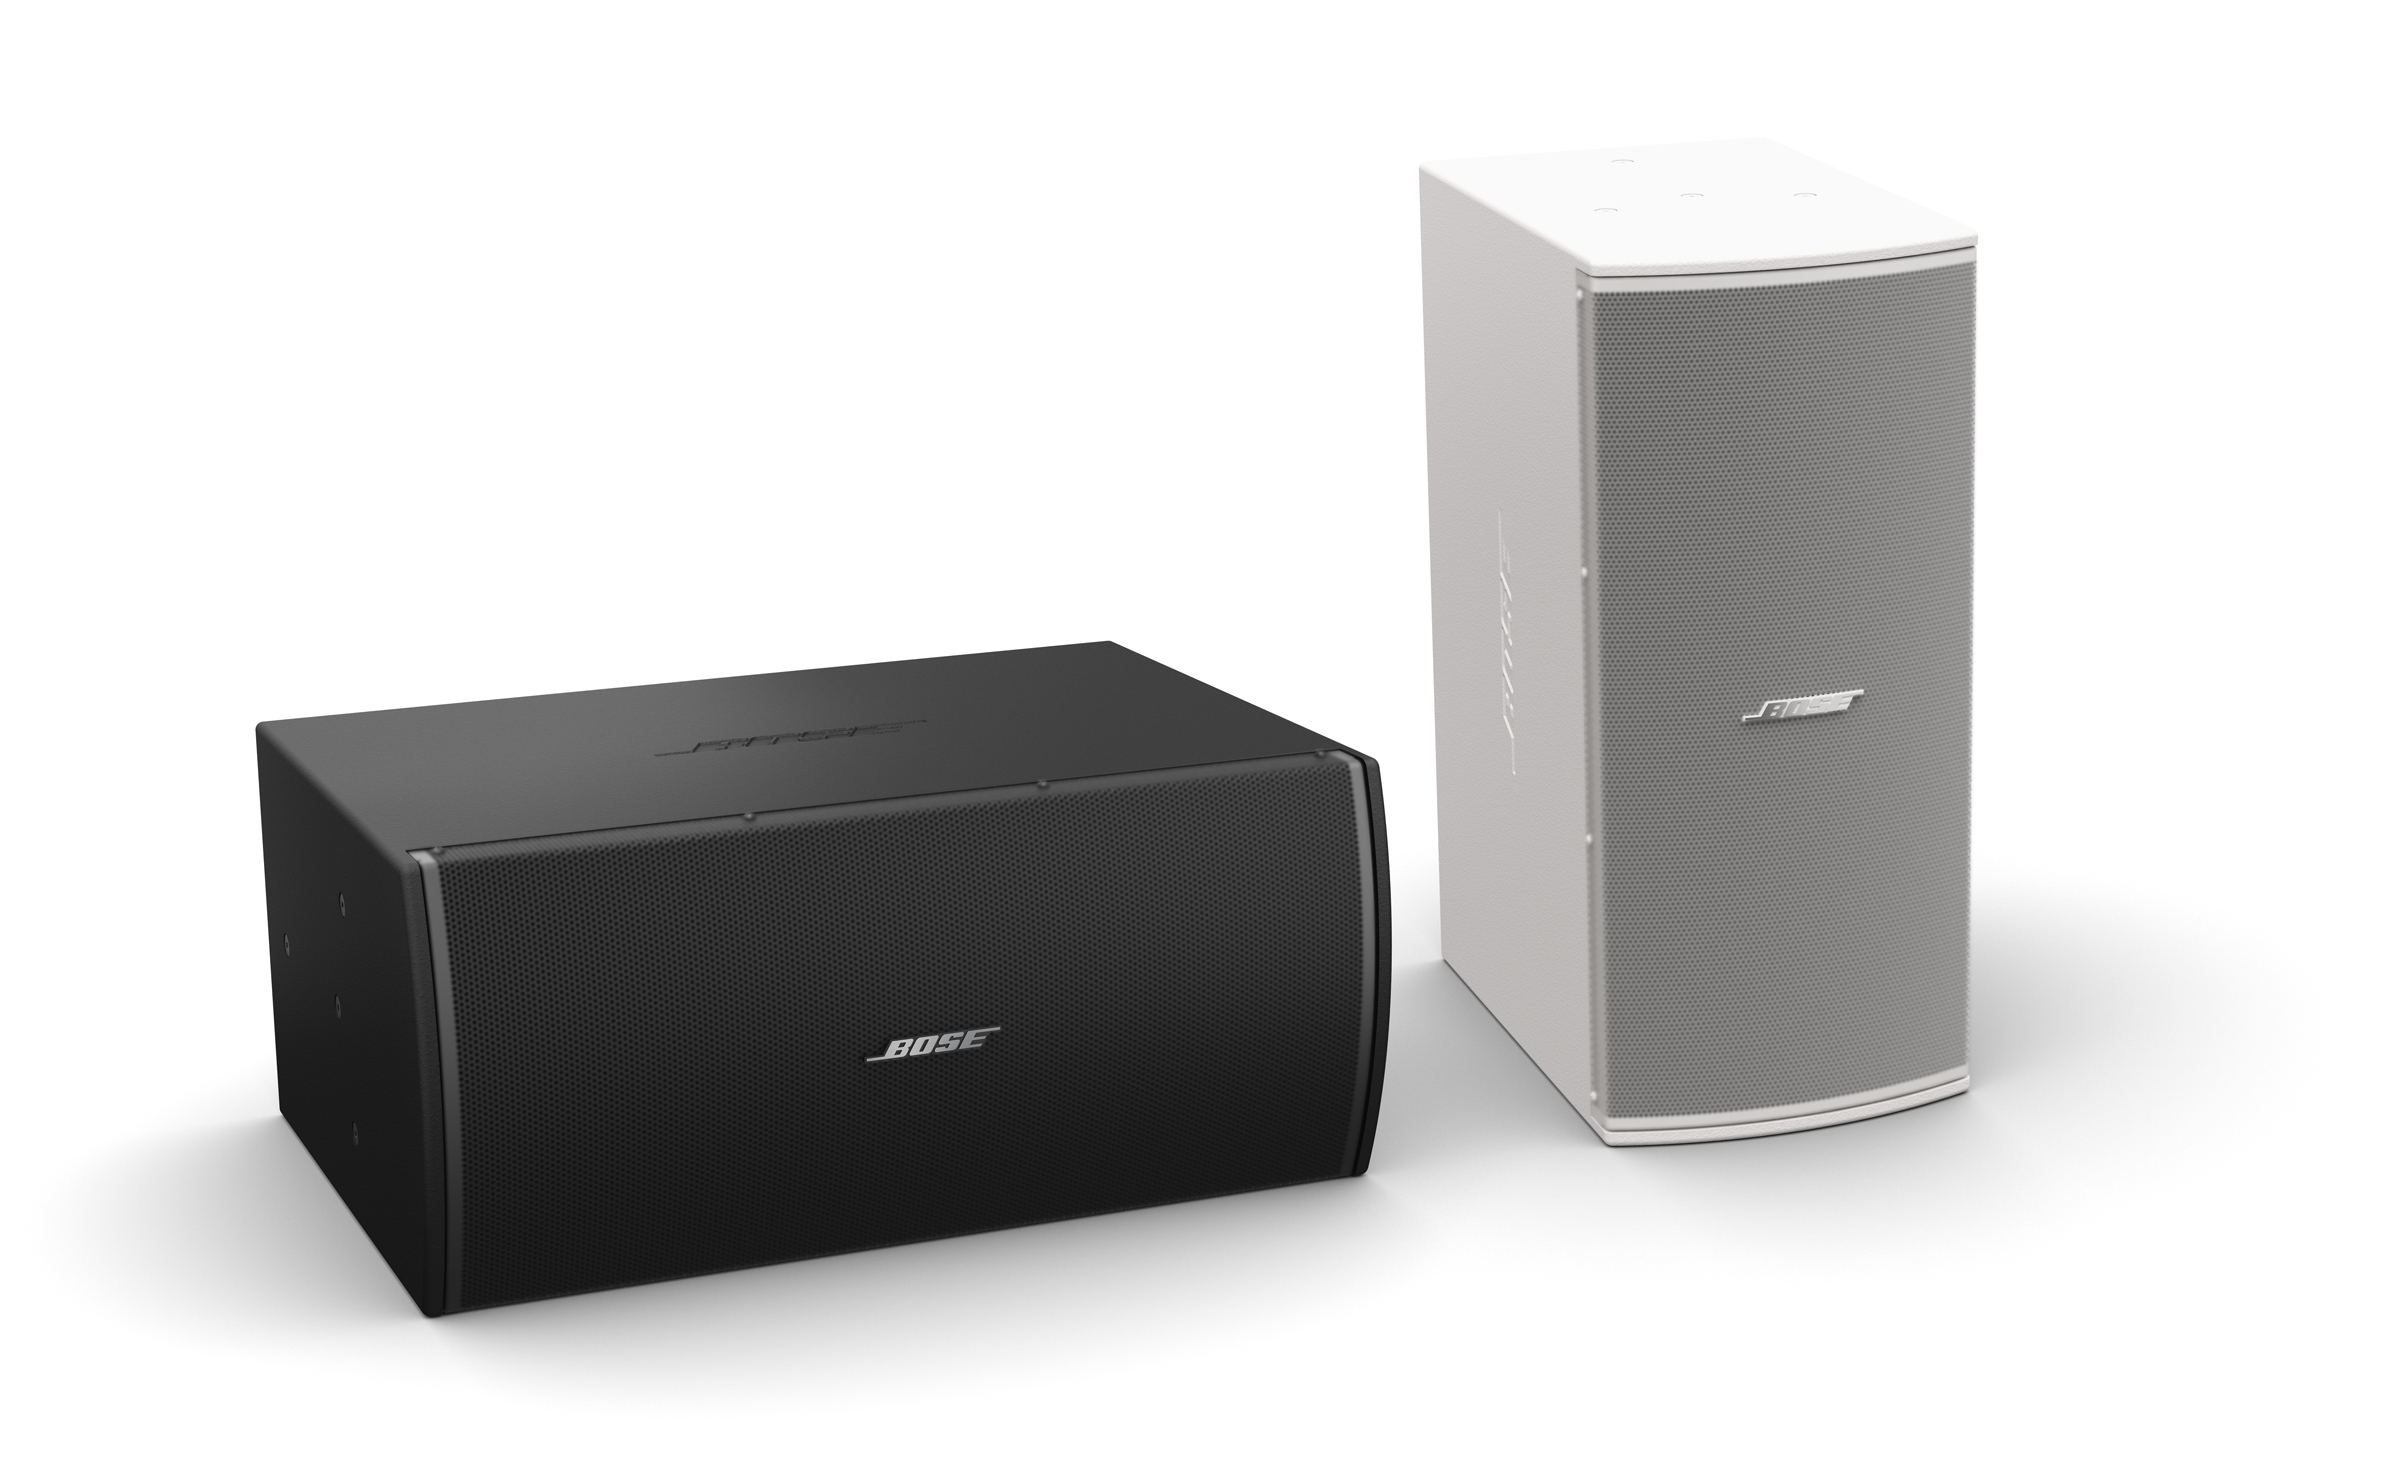 http://www.clynemedia.com/bose/MB210_NowShipping/Bose_MB210_combo.jpg